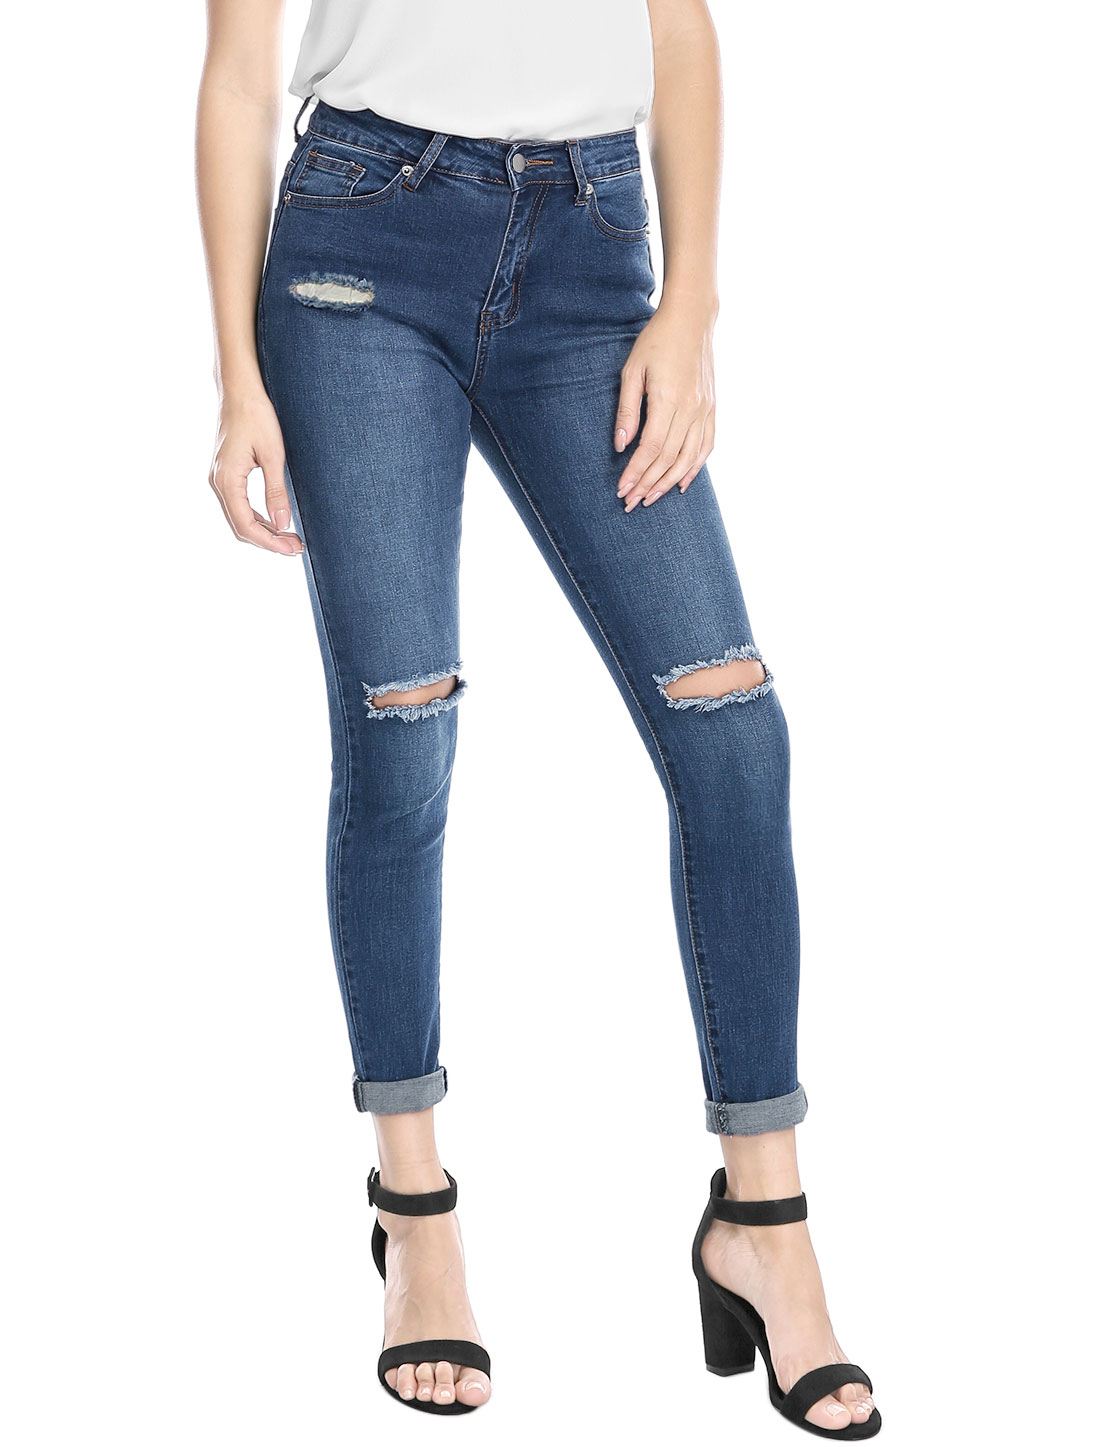 Women Mid Rise Stretch Distressed Design Skinny Jeans Blue M